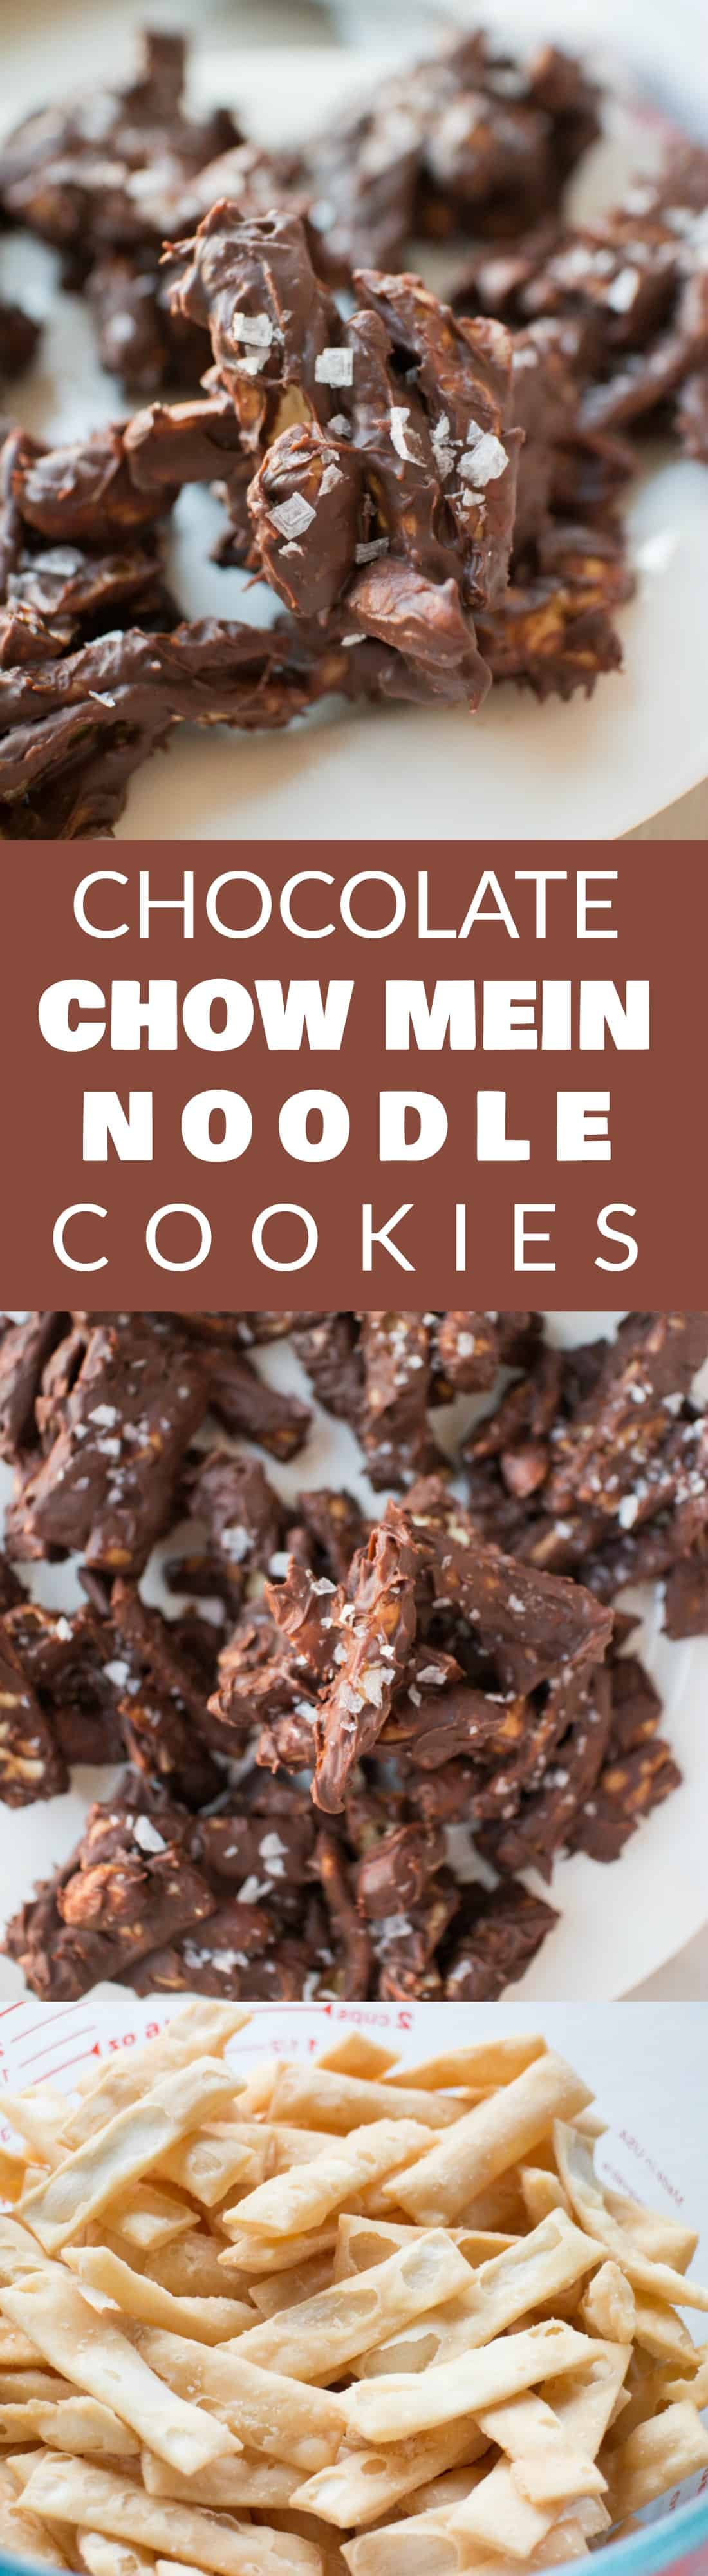 CHOCOLATE CHOW MEIN Noodle COOKIES are my family's favorite! This easy no bake recipe only requires 4 ingredients! They're simple to make and you only need chocolate chips, peanut butter chips, chow mein noodles and peanuts! I love adding a dash of salt on top too! They are so much to make with kids! Make them for parties, dessert, bake sales or a alternative to Christmas cookies!